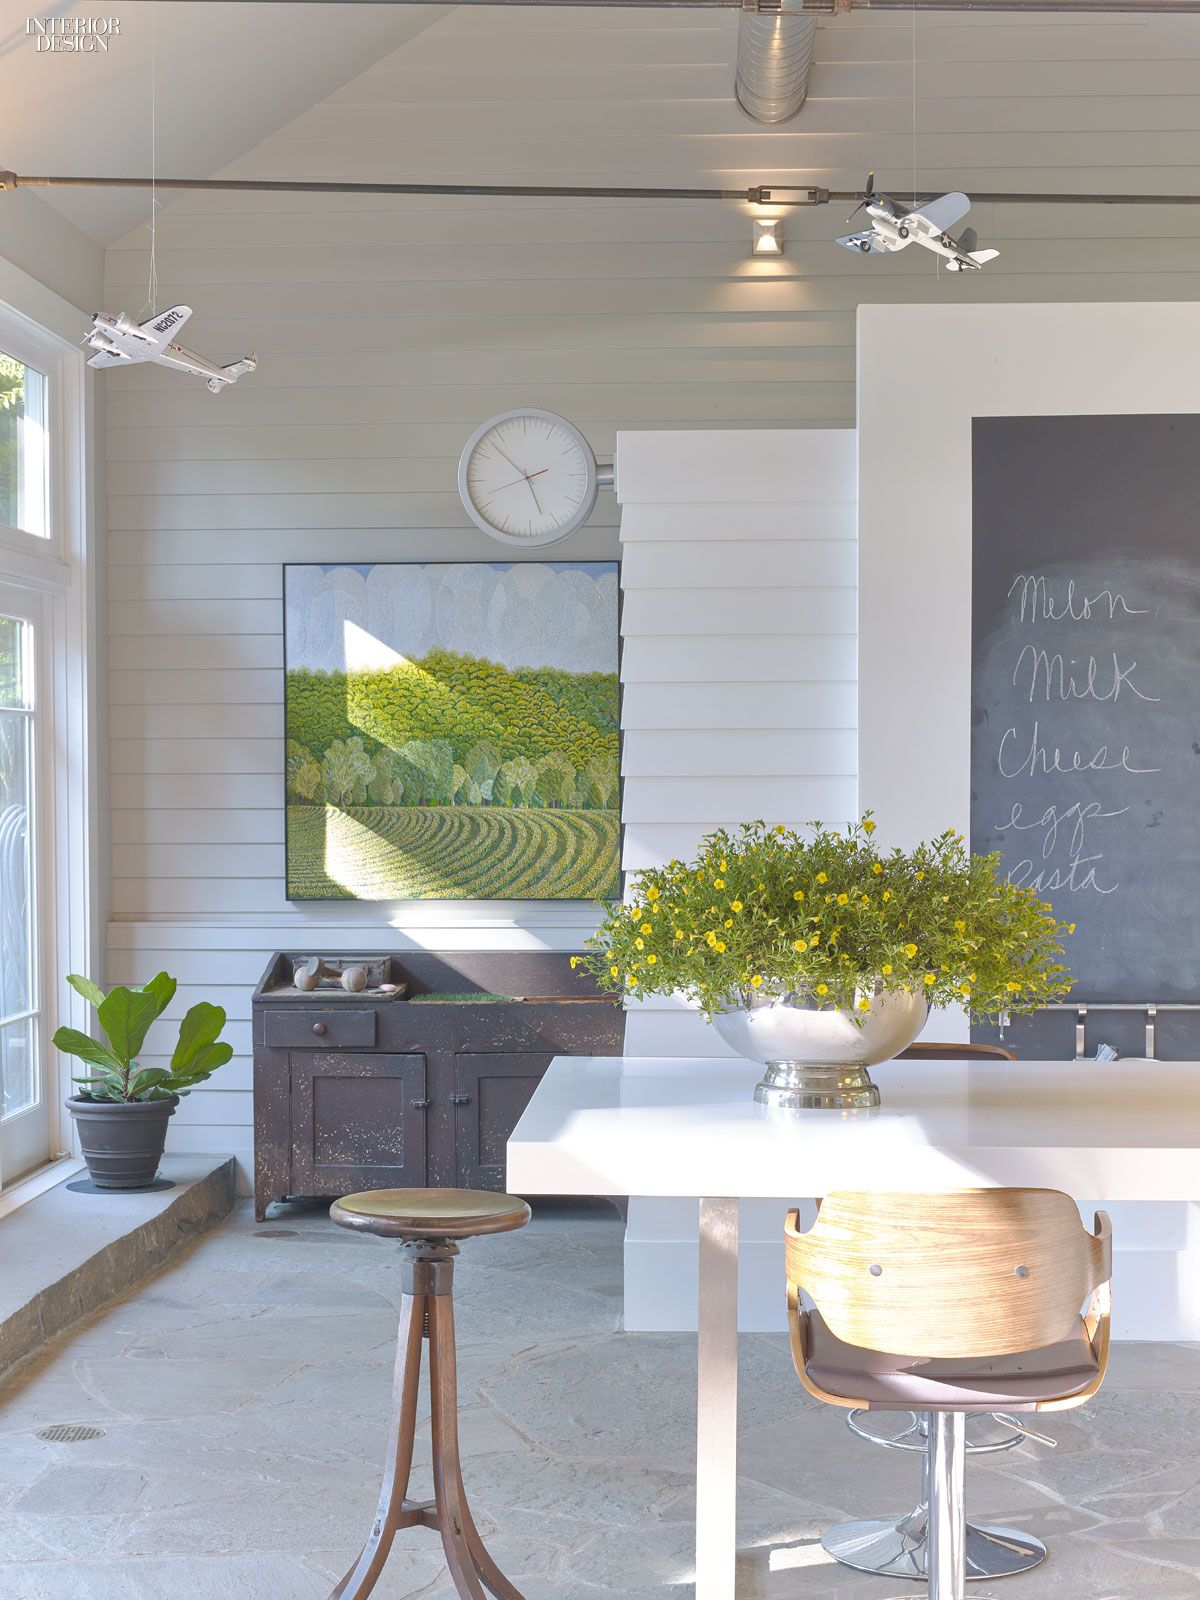 Inside laura bohn   weekend retreat in pennsylvania design interiordesign interiordesignmagazine projects also country homes rh pinterest